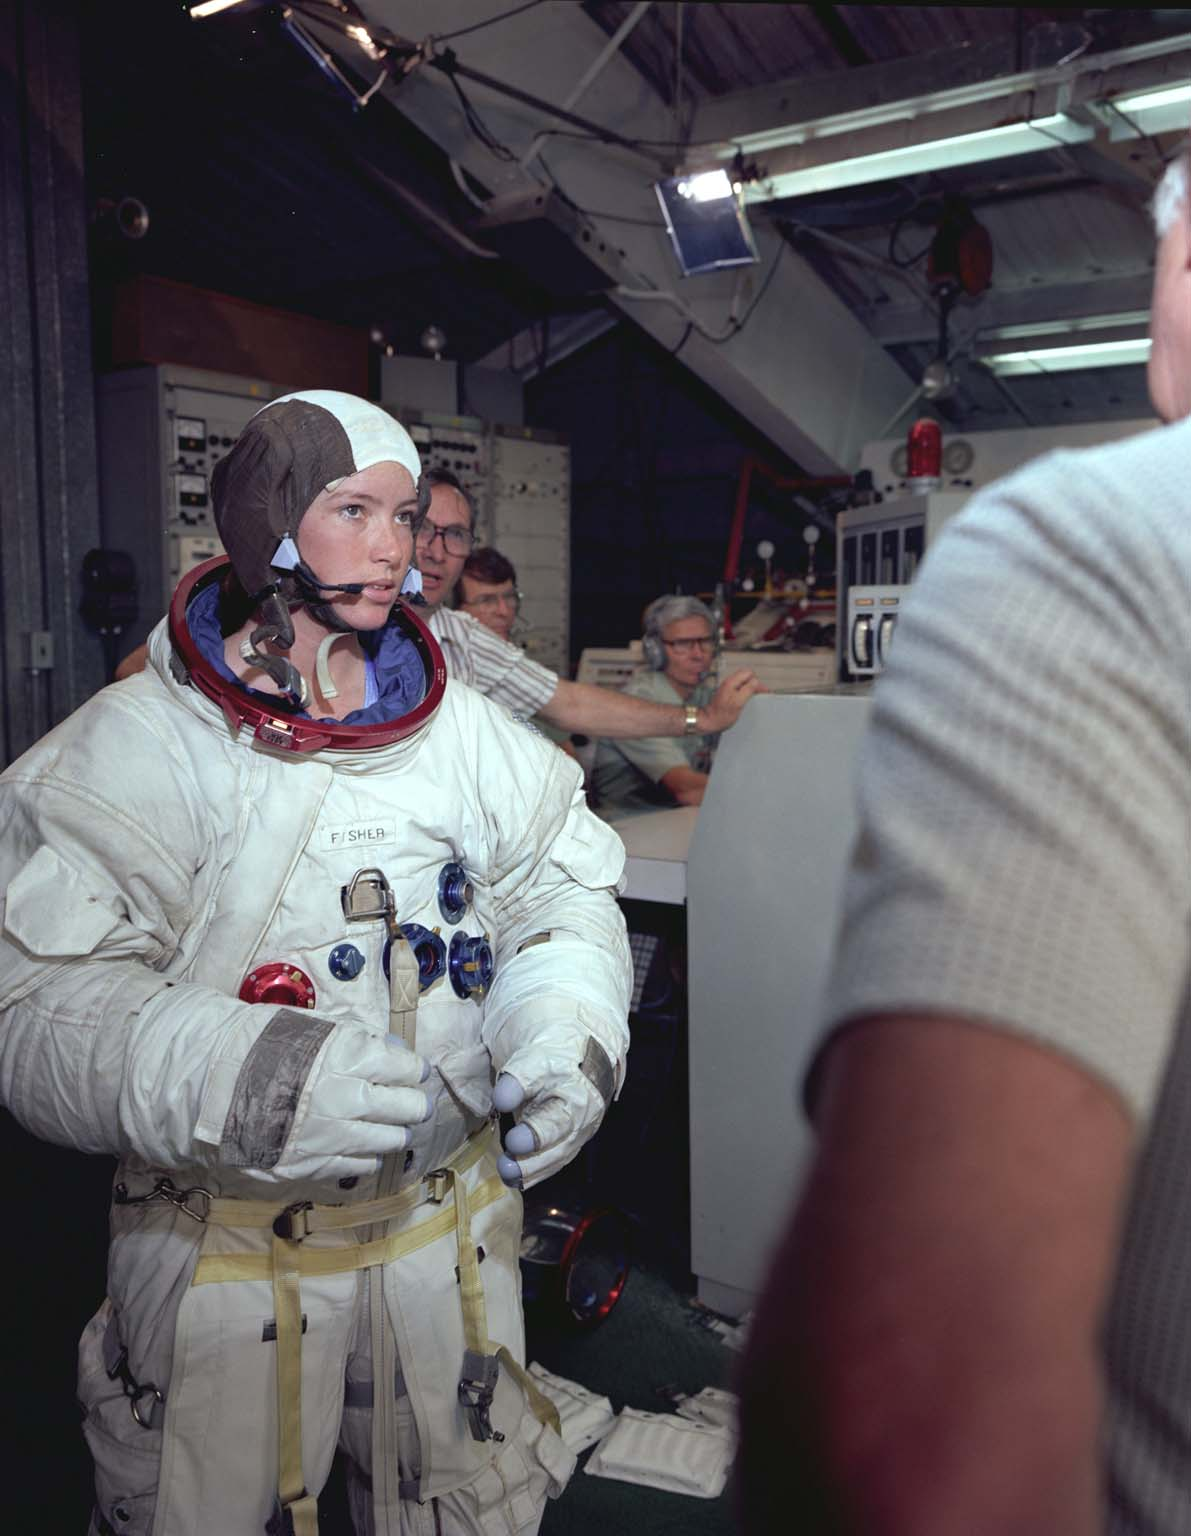 Astronaut Anna Fisher Suited Up For NBS Training